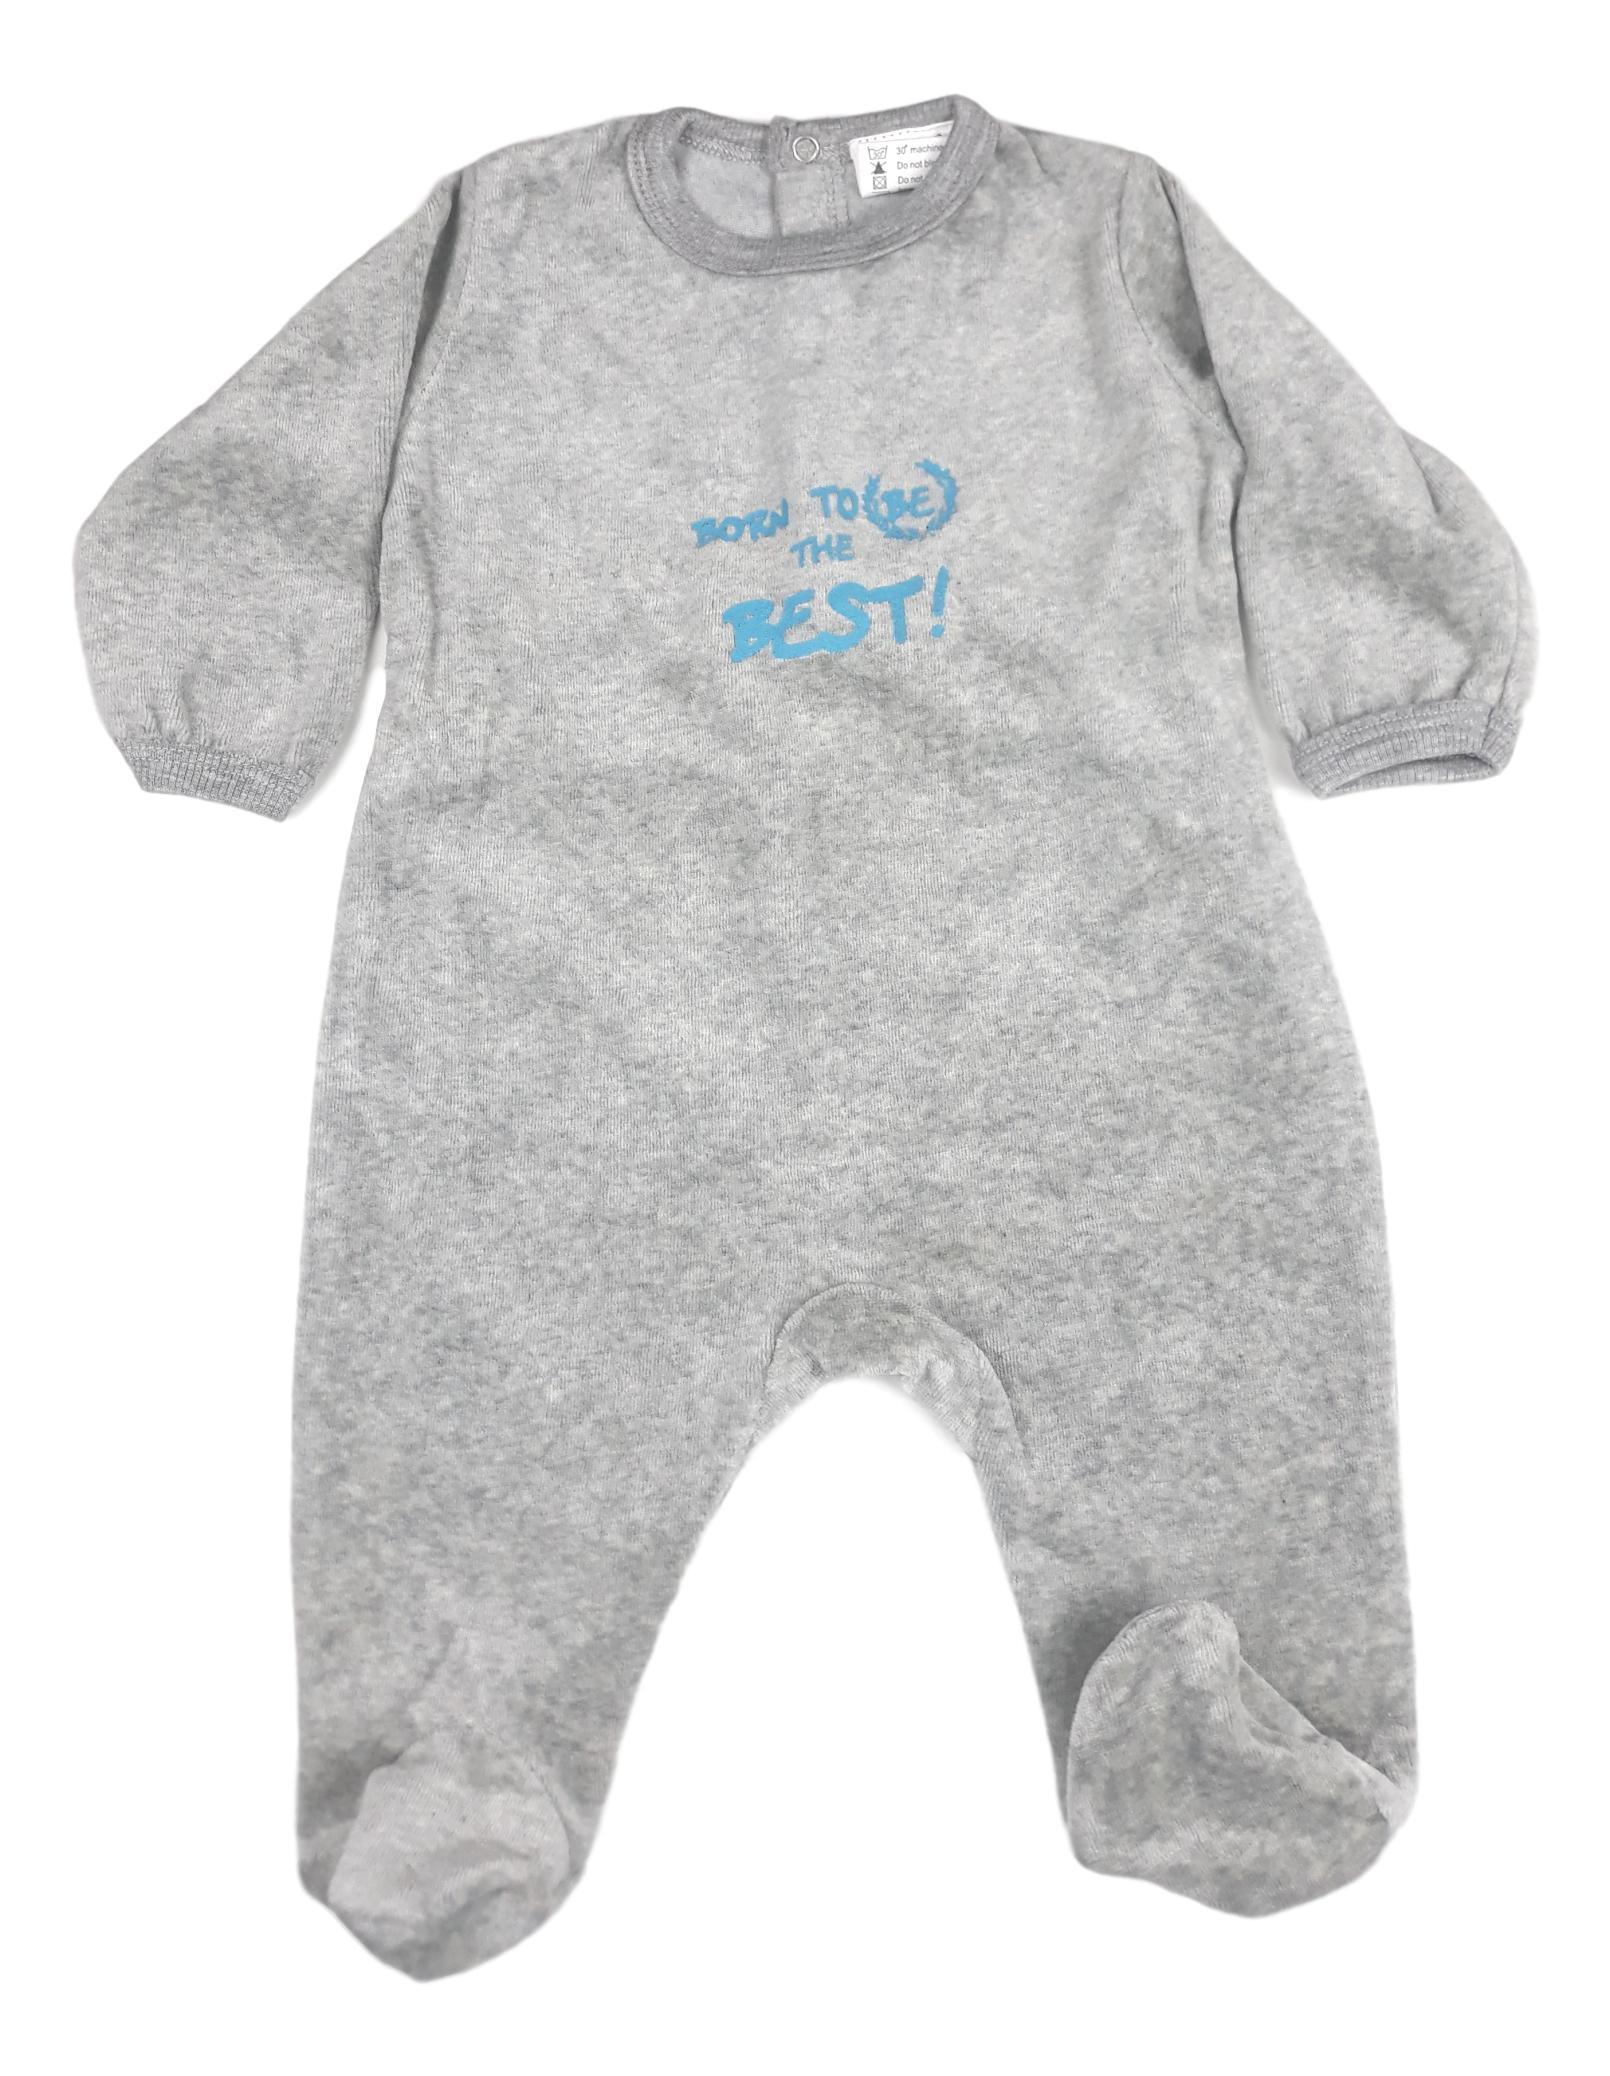 Rock A Bye Baby - Taille 3/6 mois